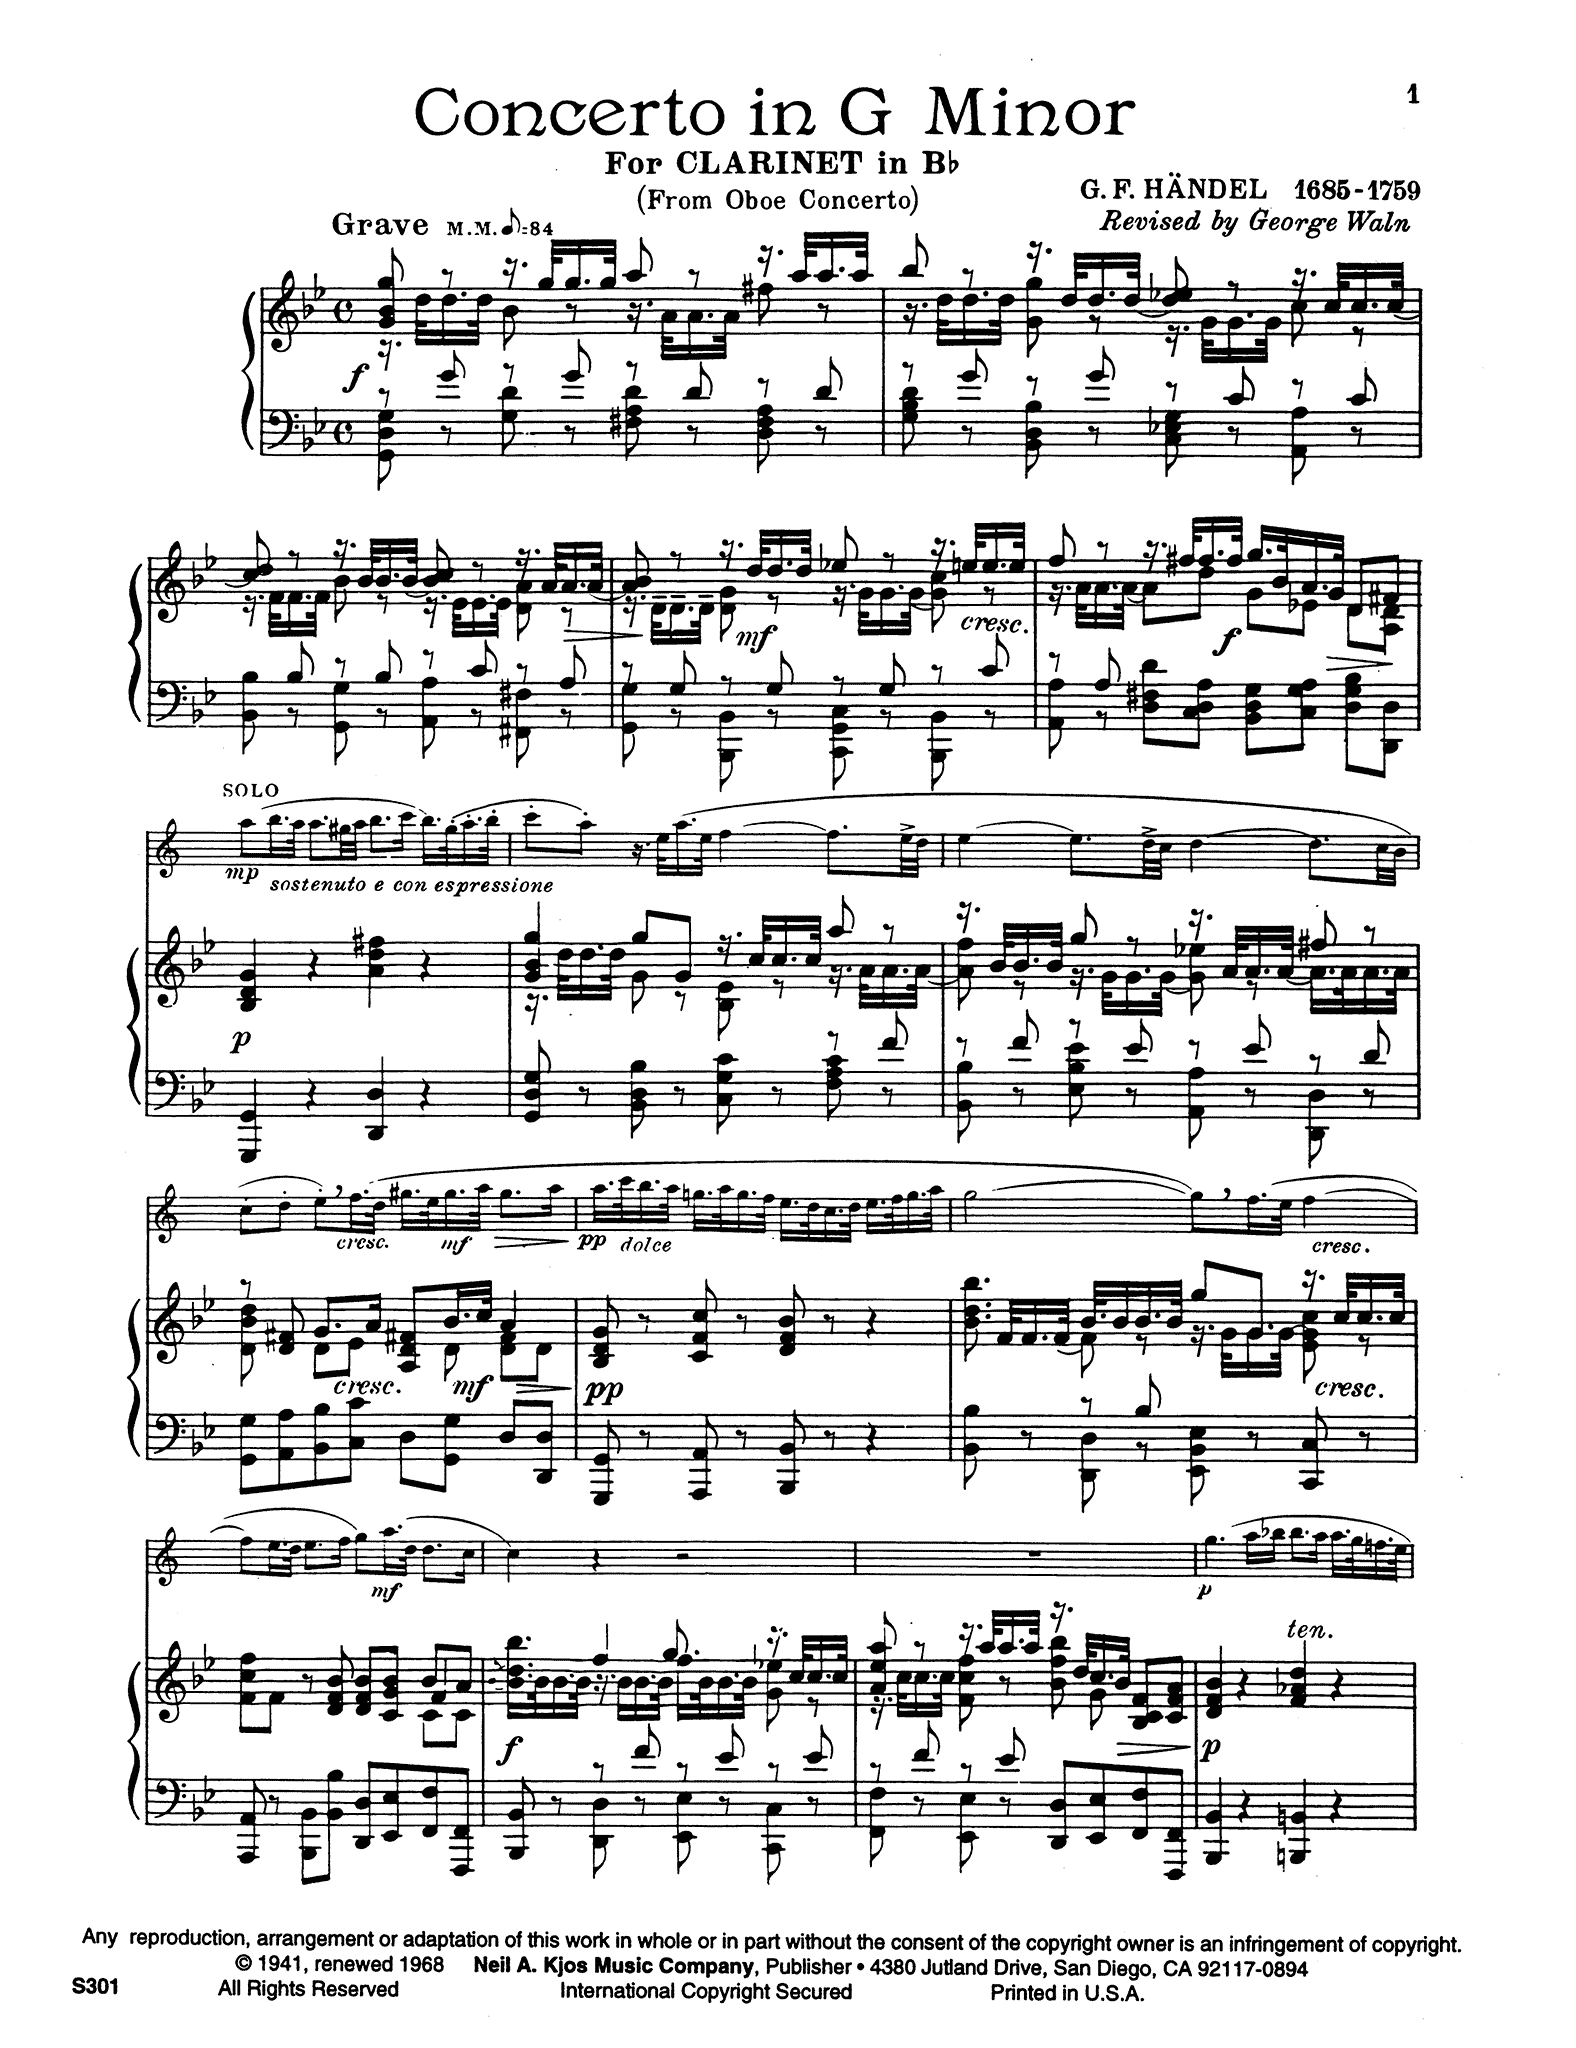 Oboe Concerto No. 3 in G Minor, HWV 287 Score Page 1